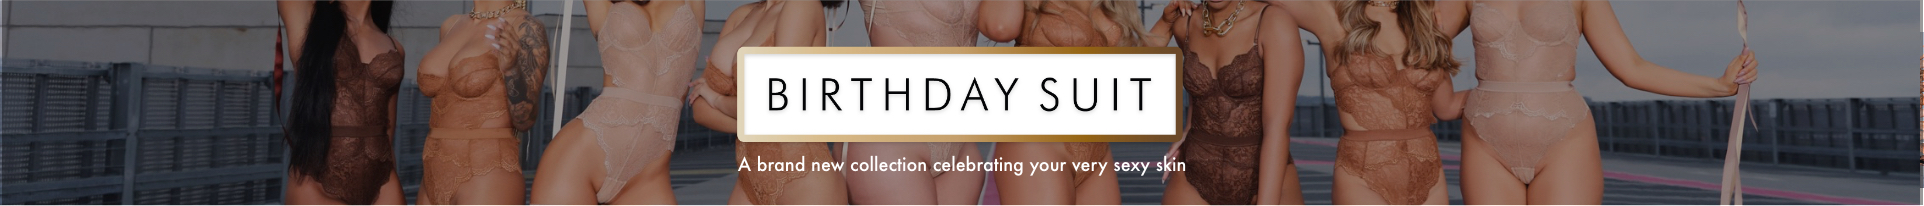 Birthday Suit - A brand new nude collection celebrating your very sexy skin? Why step this way…